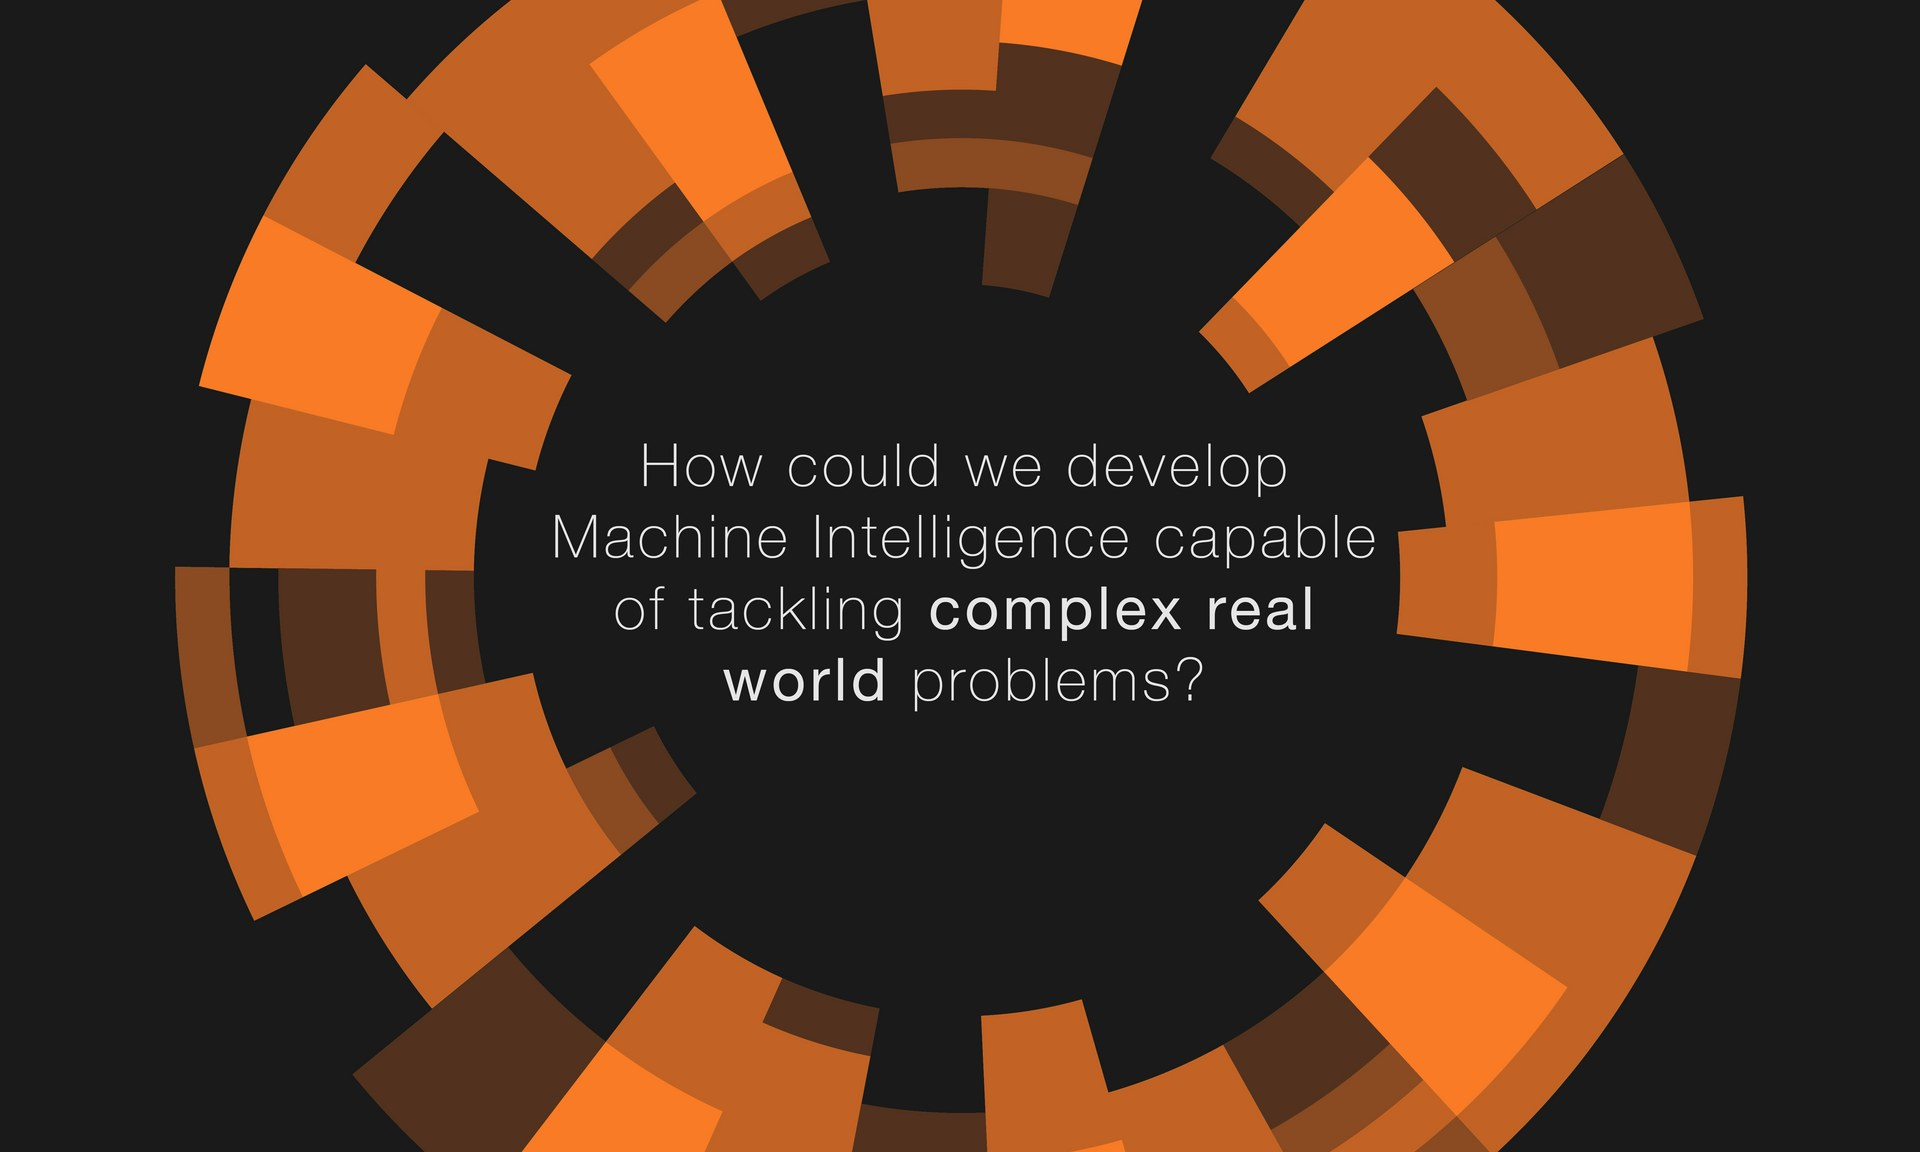 How could we develop machine intelligence capable of tackling complex real world problems?